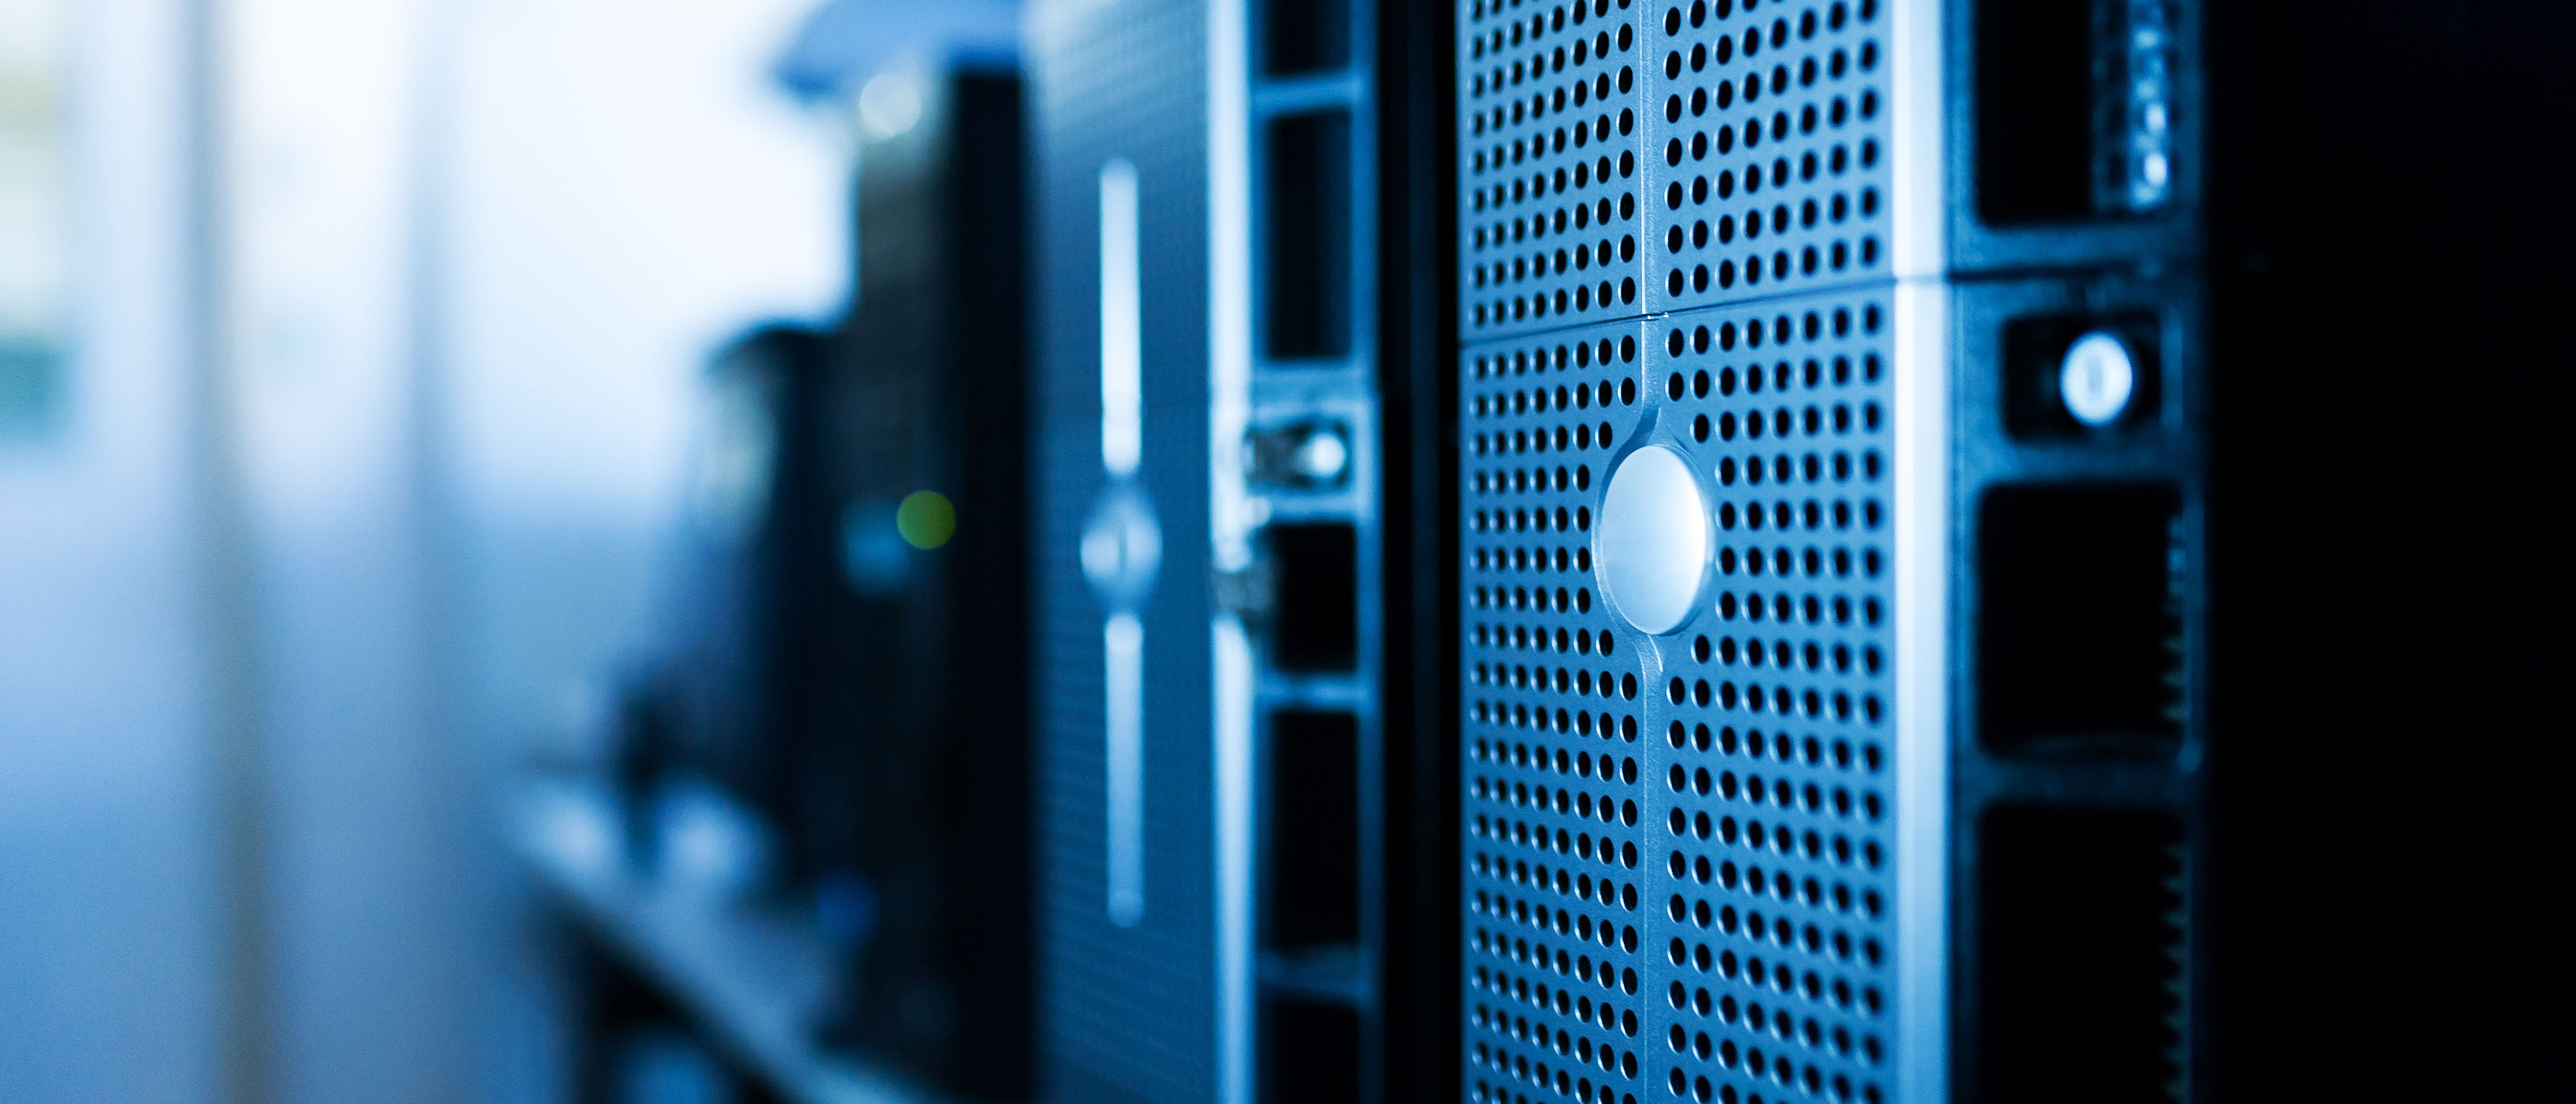 Case Study - Data Storage and PC Component Accessory Manufacturer